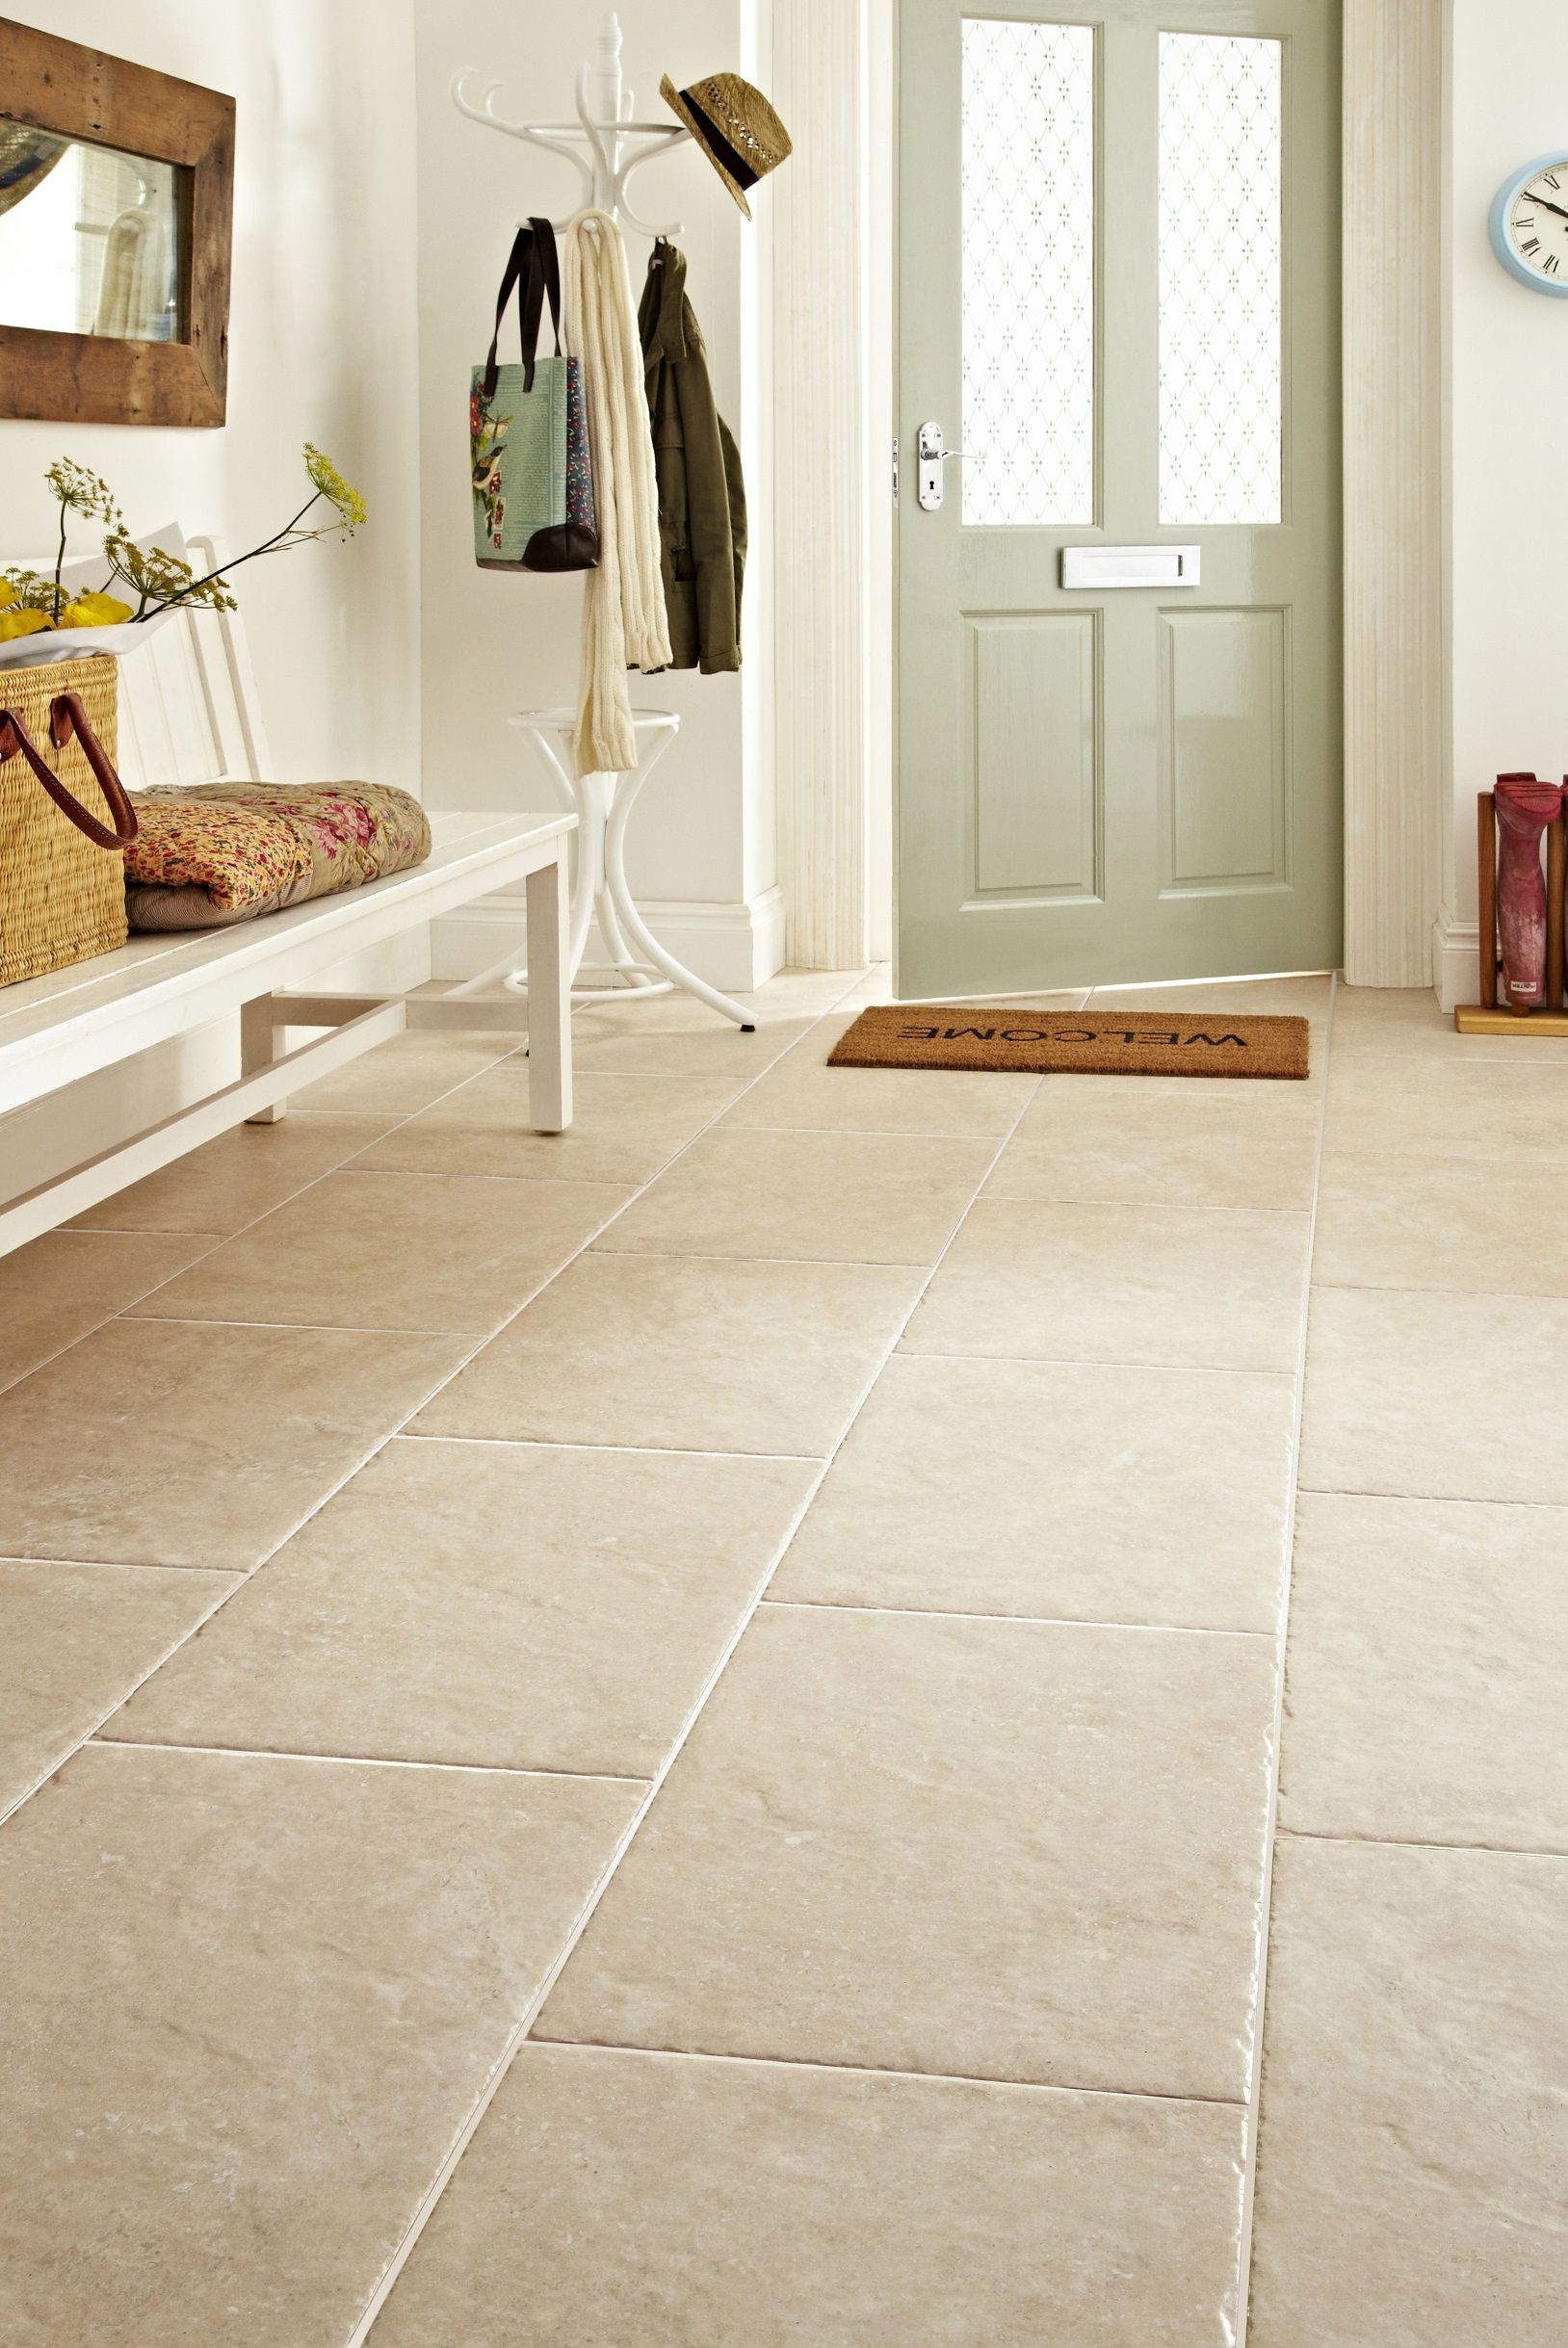 kitchen floor tiles Kitchen floor tiles at Topps Tiles Available in a range of colours materials and patterns Express 24 hour home delivery available free on all samples